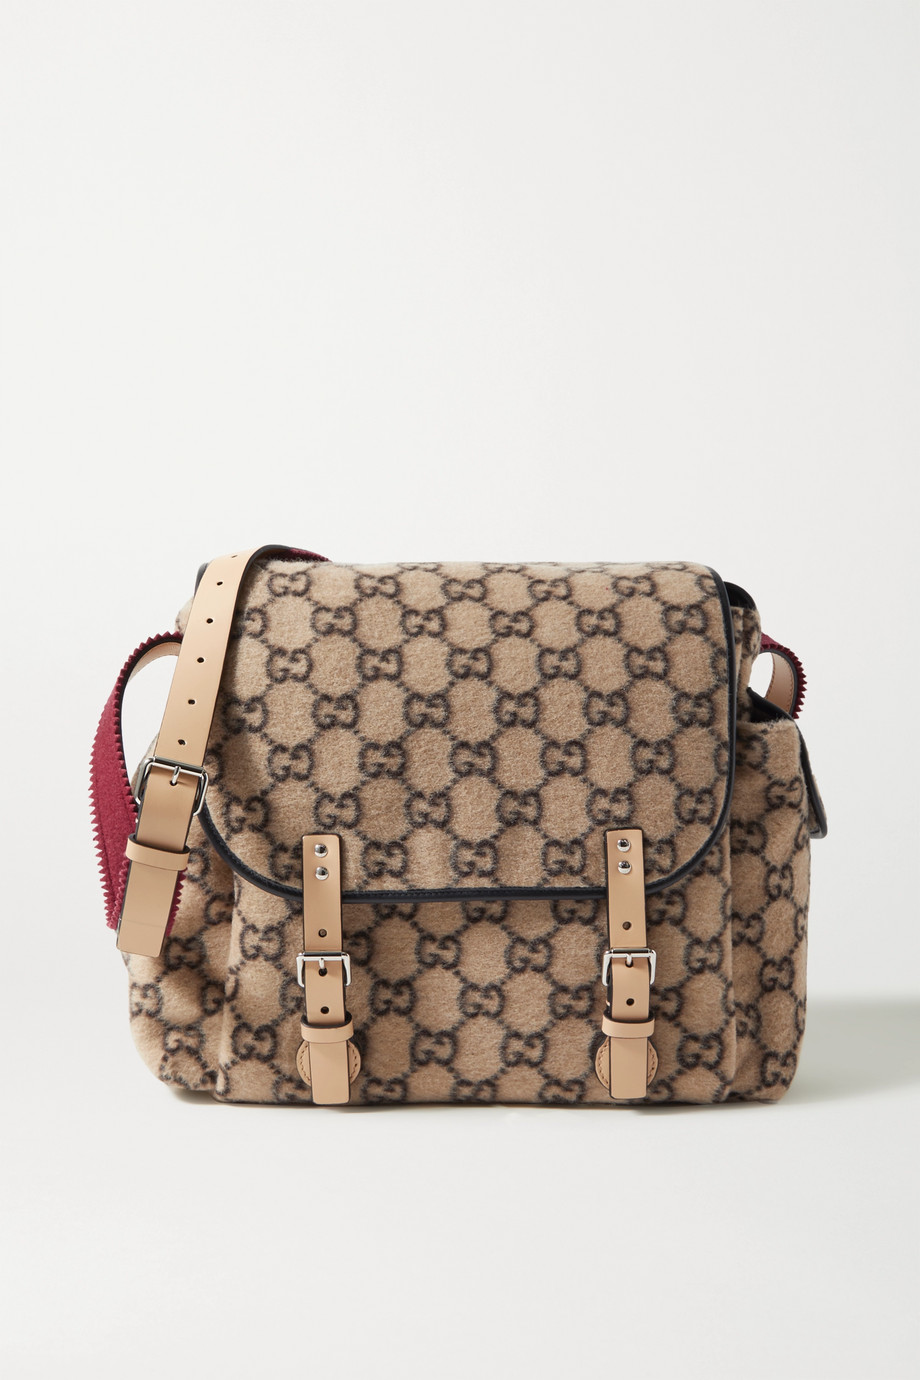 Gucci Leather-trimmed printed felt diaper bag